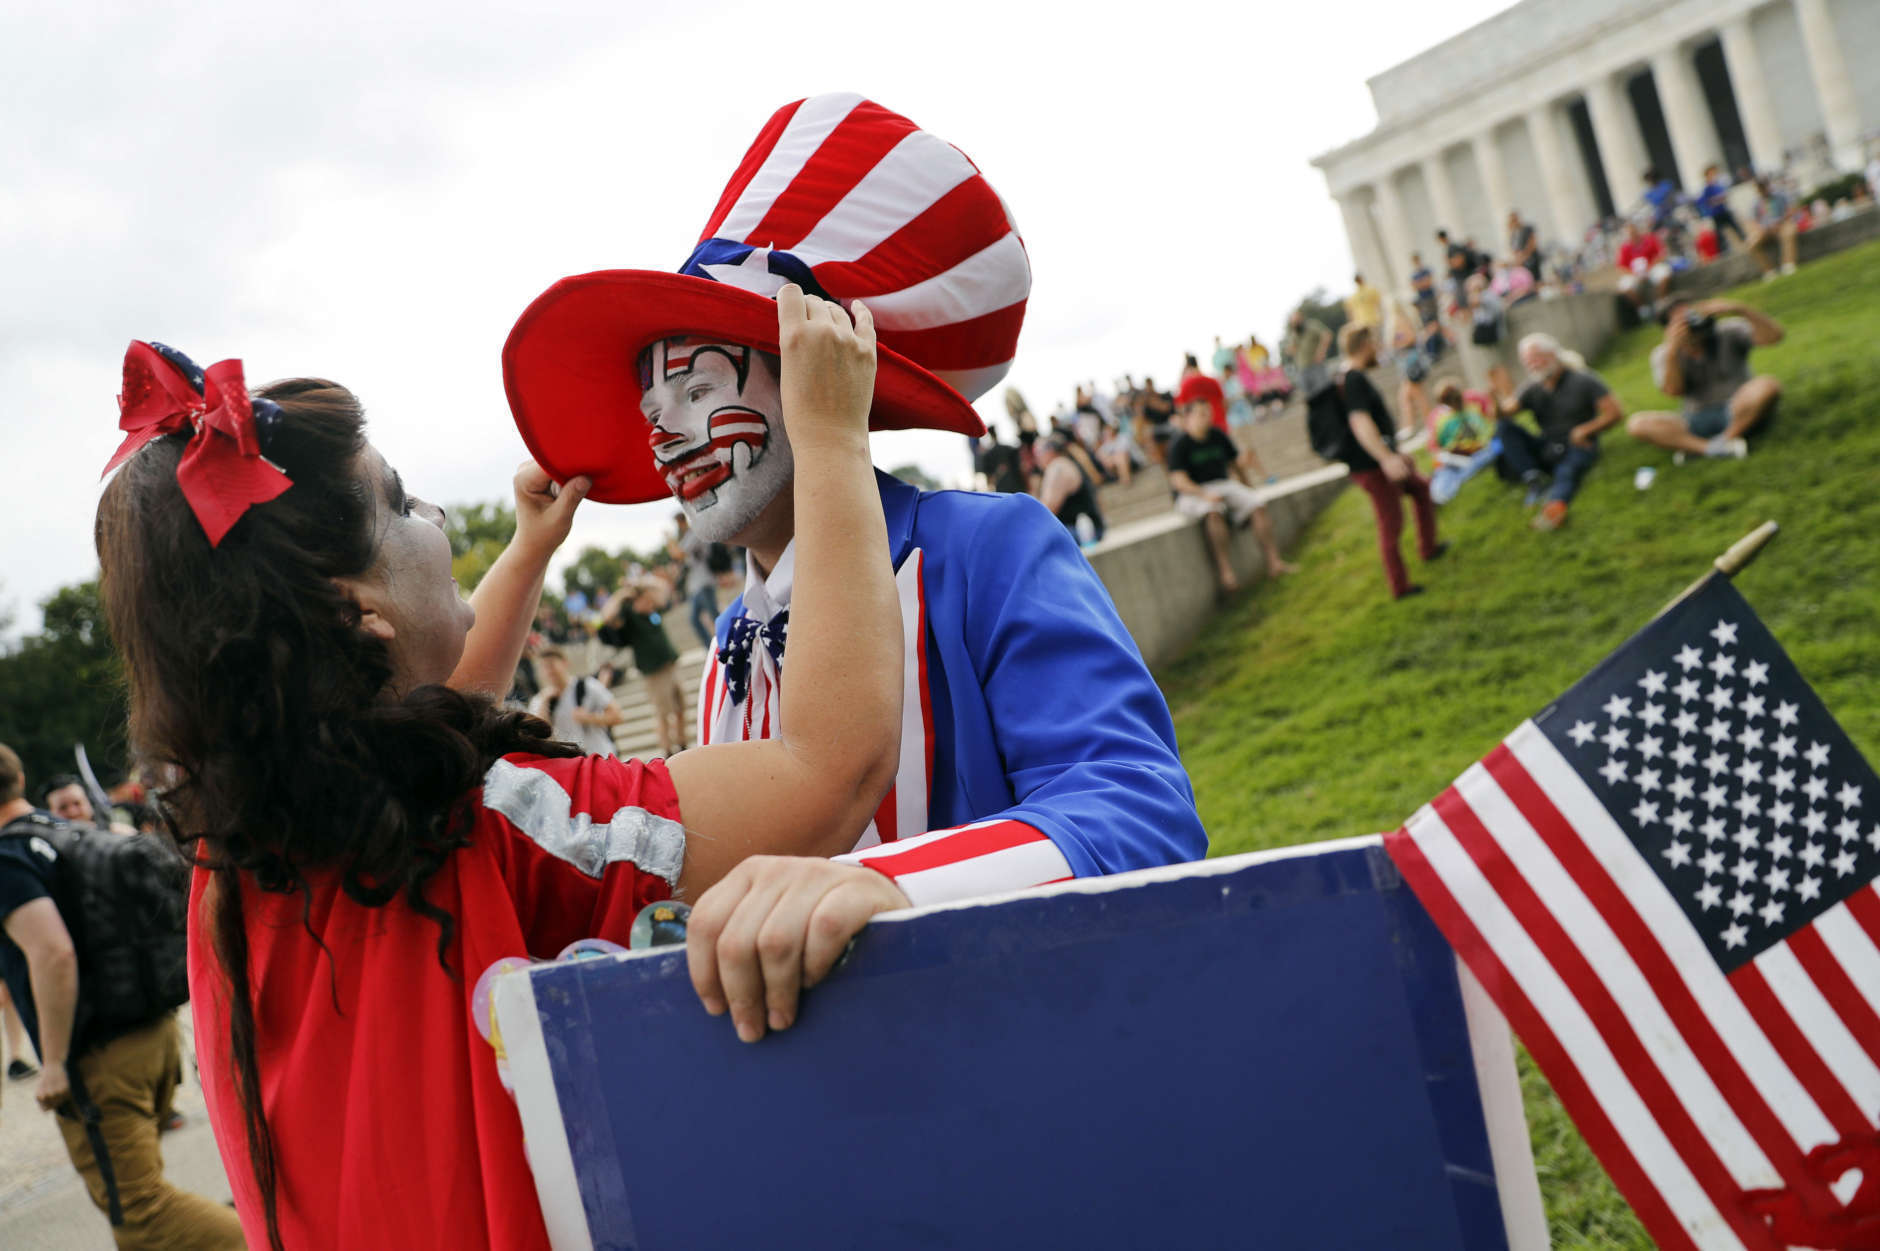 """Theresa Lindsey, left, dressed as Snow White helps Timothy Schlarmann, center, dressed as Uncle Sam, who are from southern California, with his costume as they join other juggalos, as supporters of the rap group Insane Clown Posse are known, in front of the Lincoln Memorial in Washington during a rally, Saturday, Sept. 16, 2017, to protest and demand that the FBI rescind its classification of the juggalos as """"loosely organized hybrid gang."""" (AP Photo/Pablo Martinez Monsivais)"""